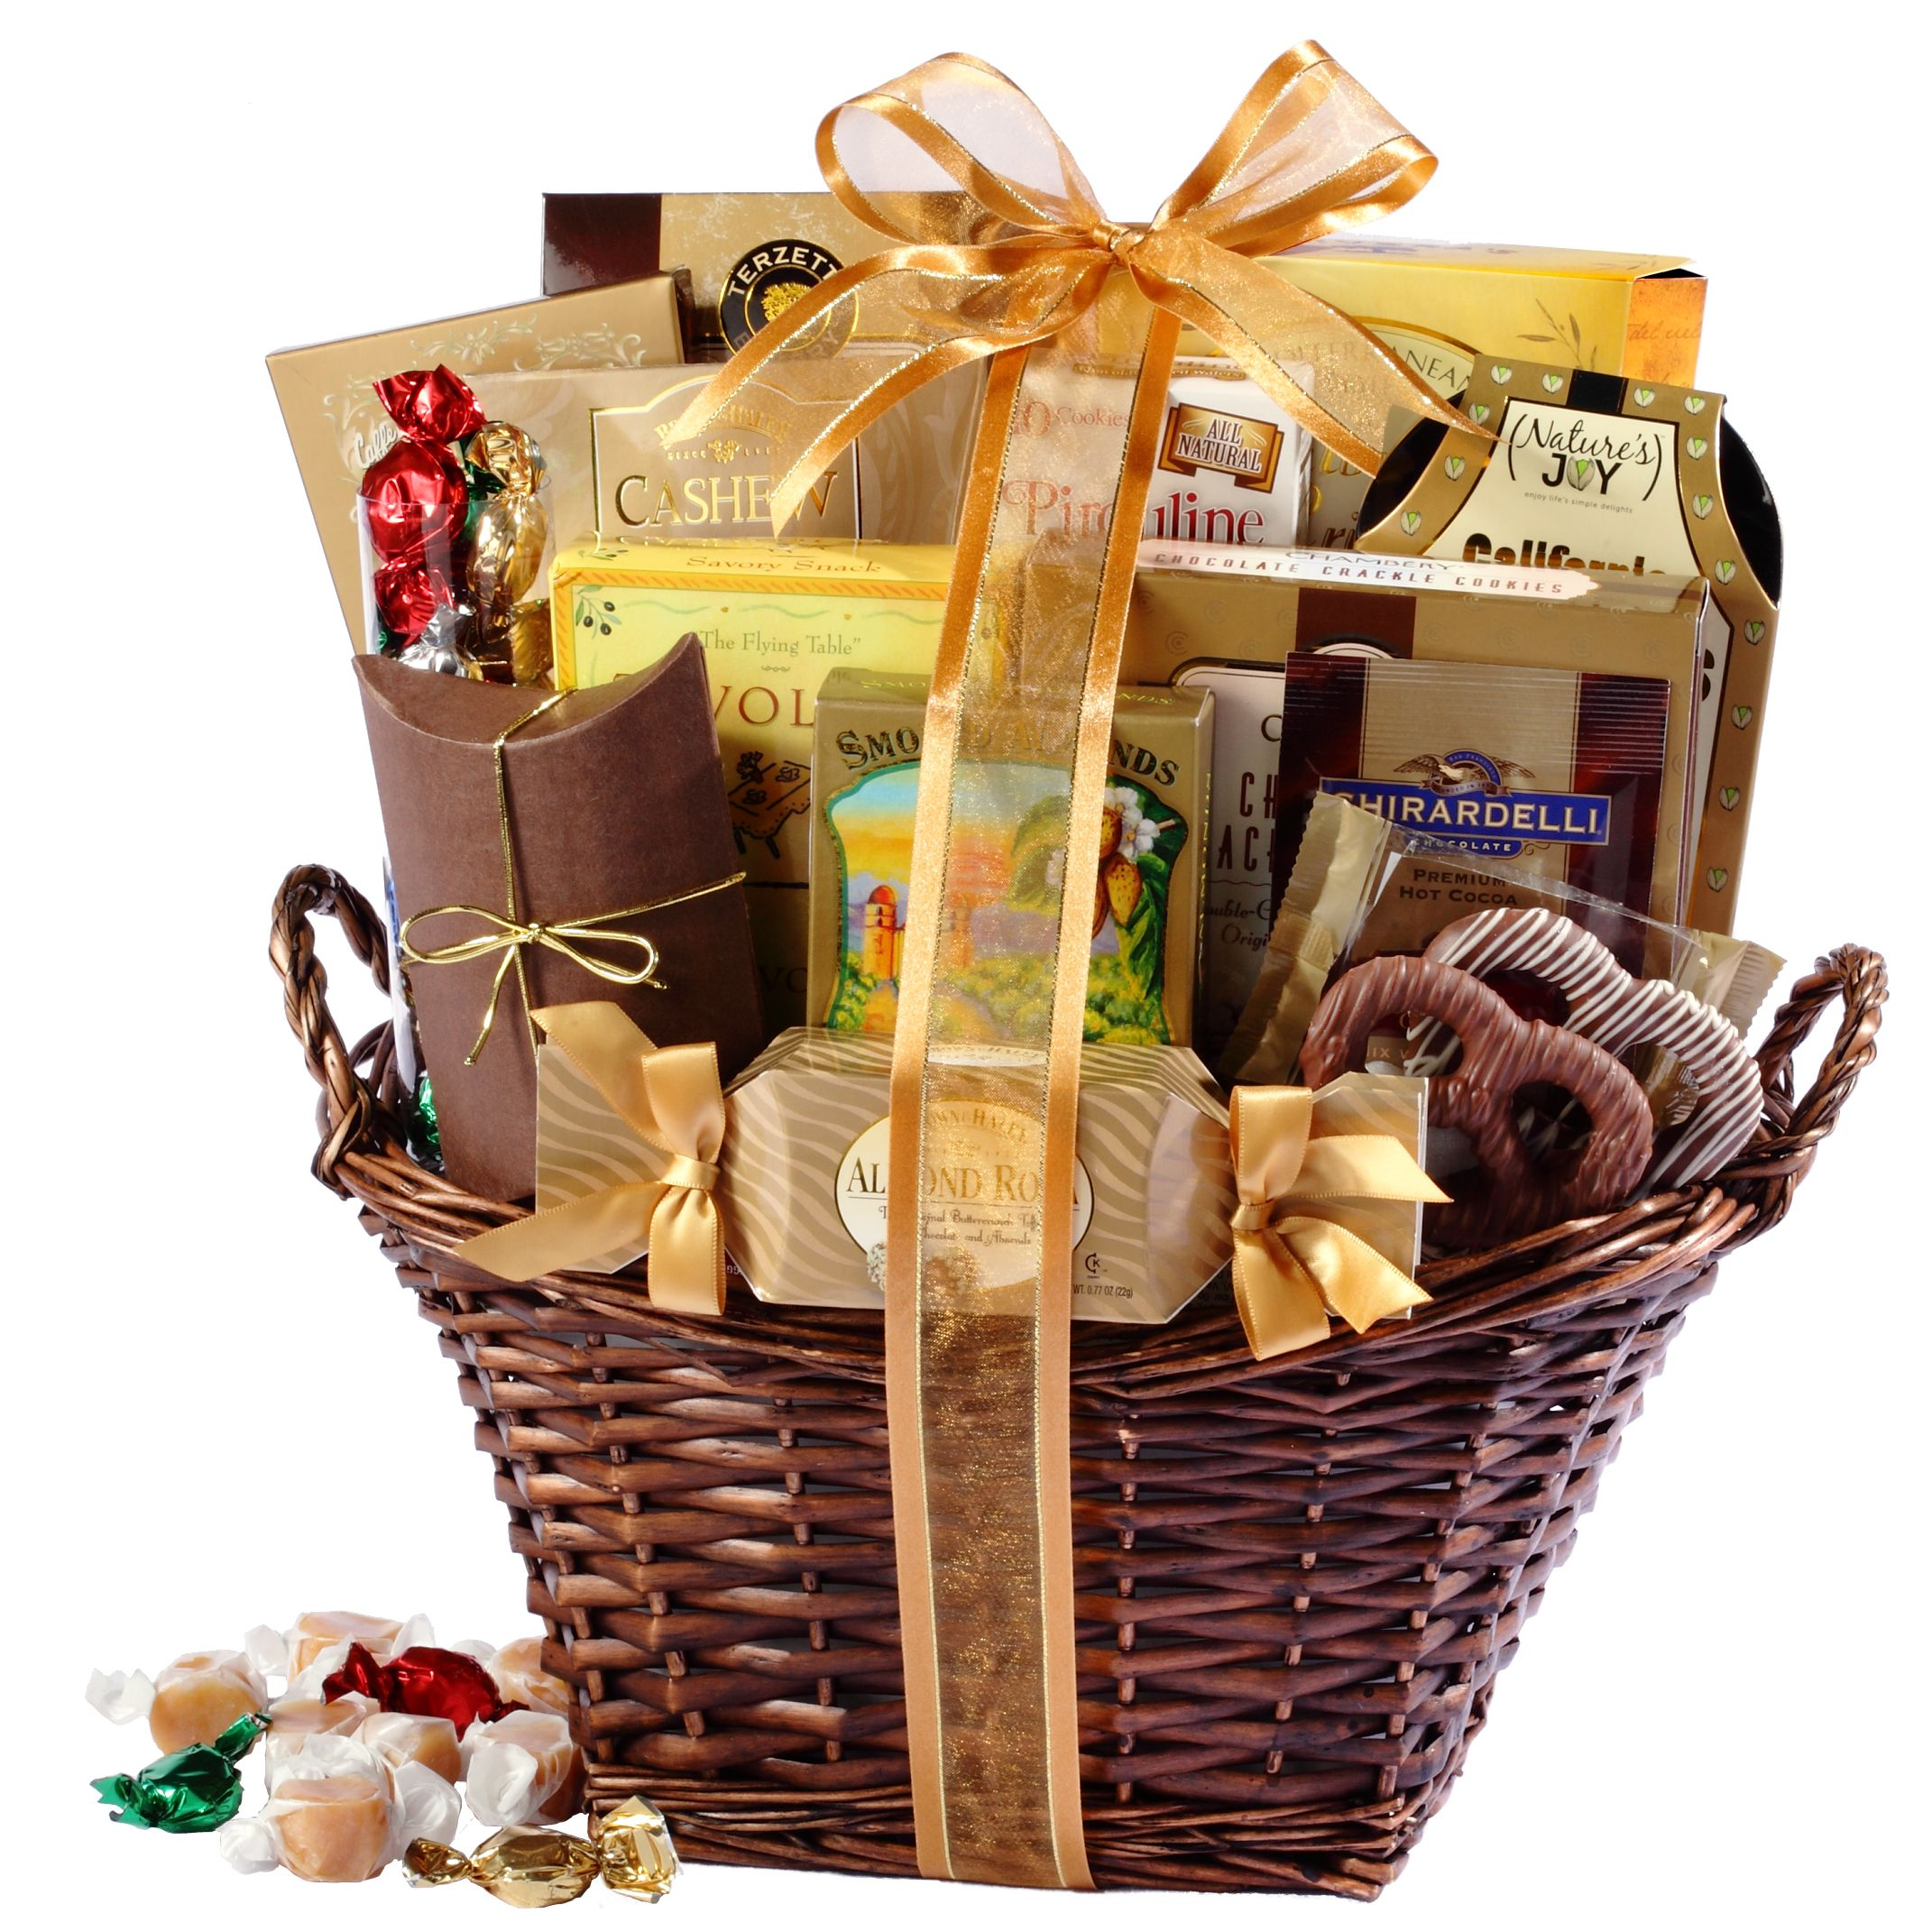 Gourmet Christmas Gift Baskets, Towers & More | Broadway Basketeers ...